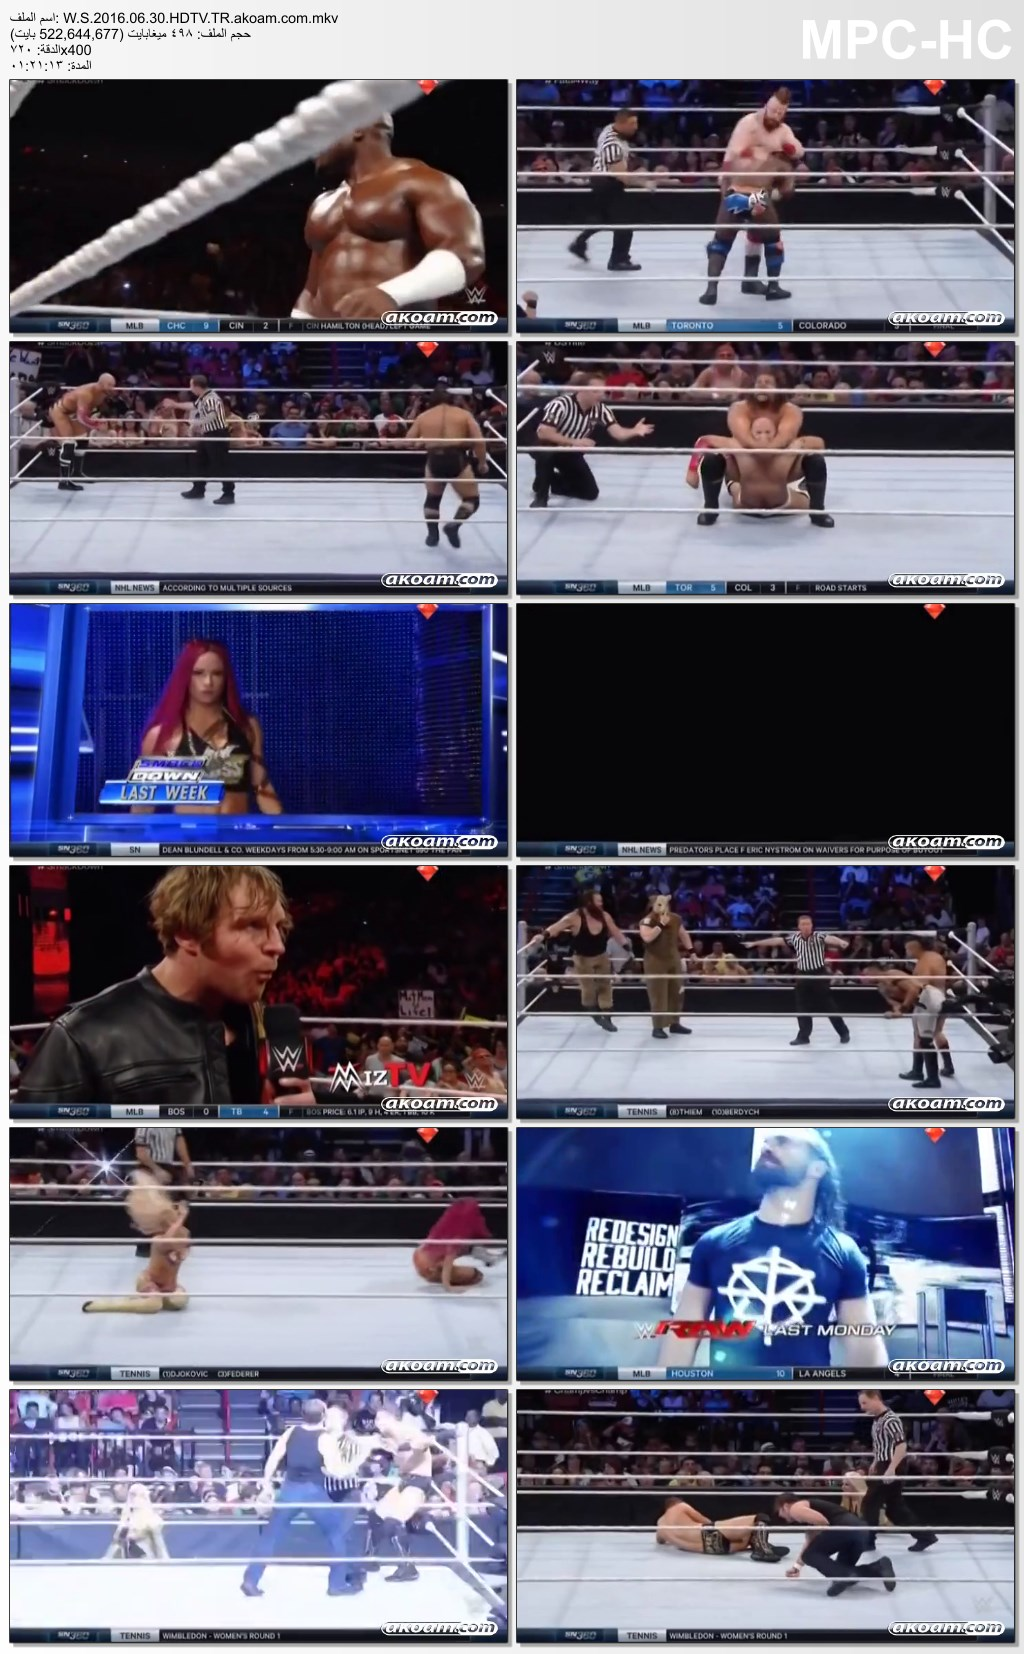 WWE Smackdown,WWE Smackdown 30.06.2016,سماك داون,WWE